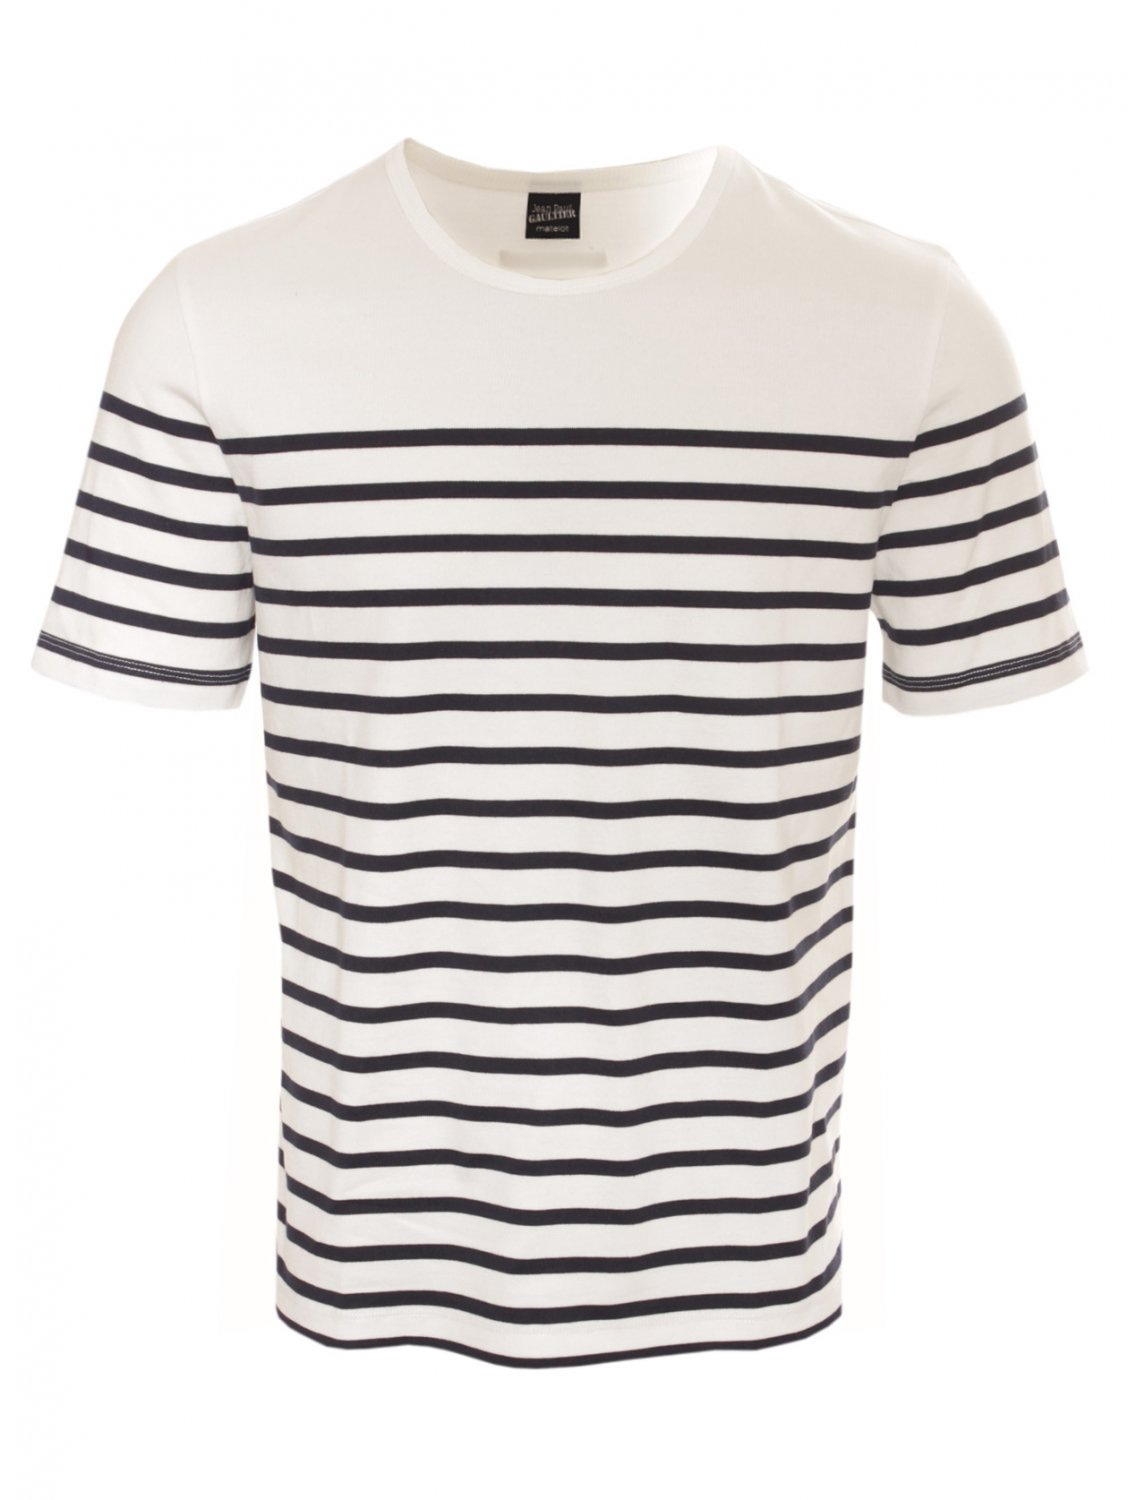 lyst jean paul gaultier stripe ss tshirt in white for men